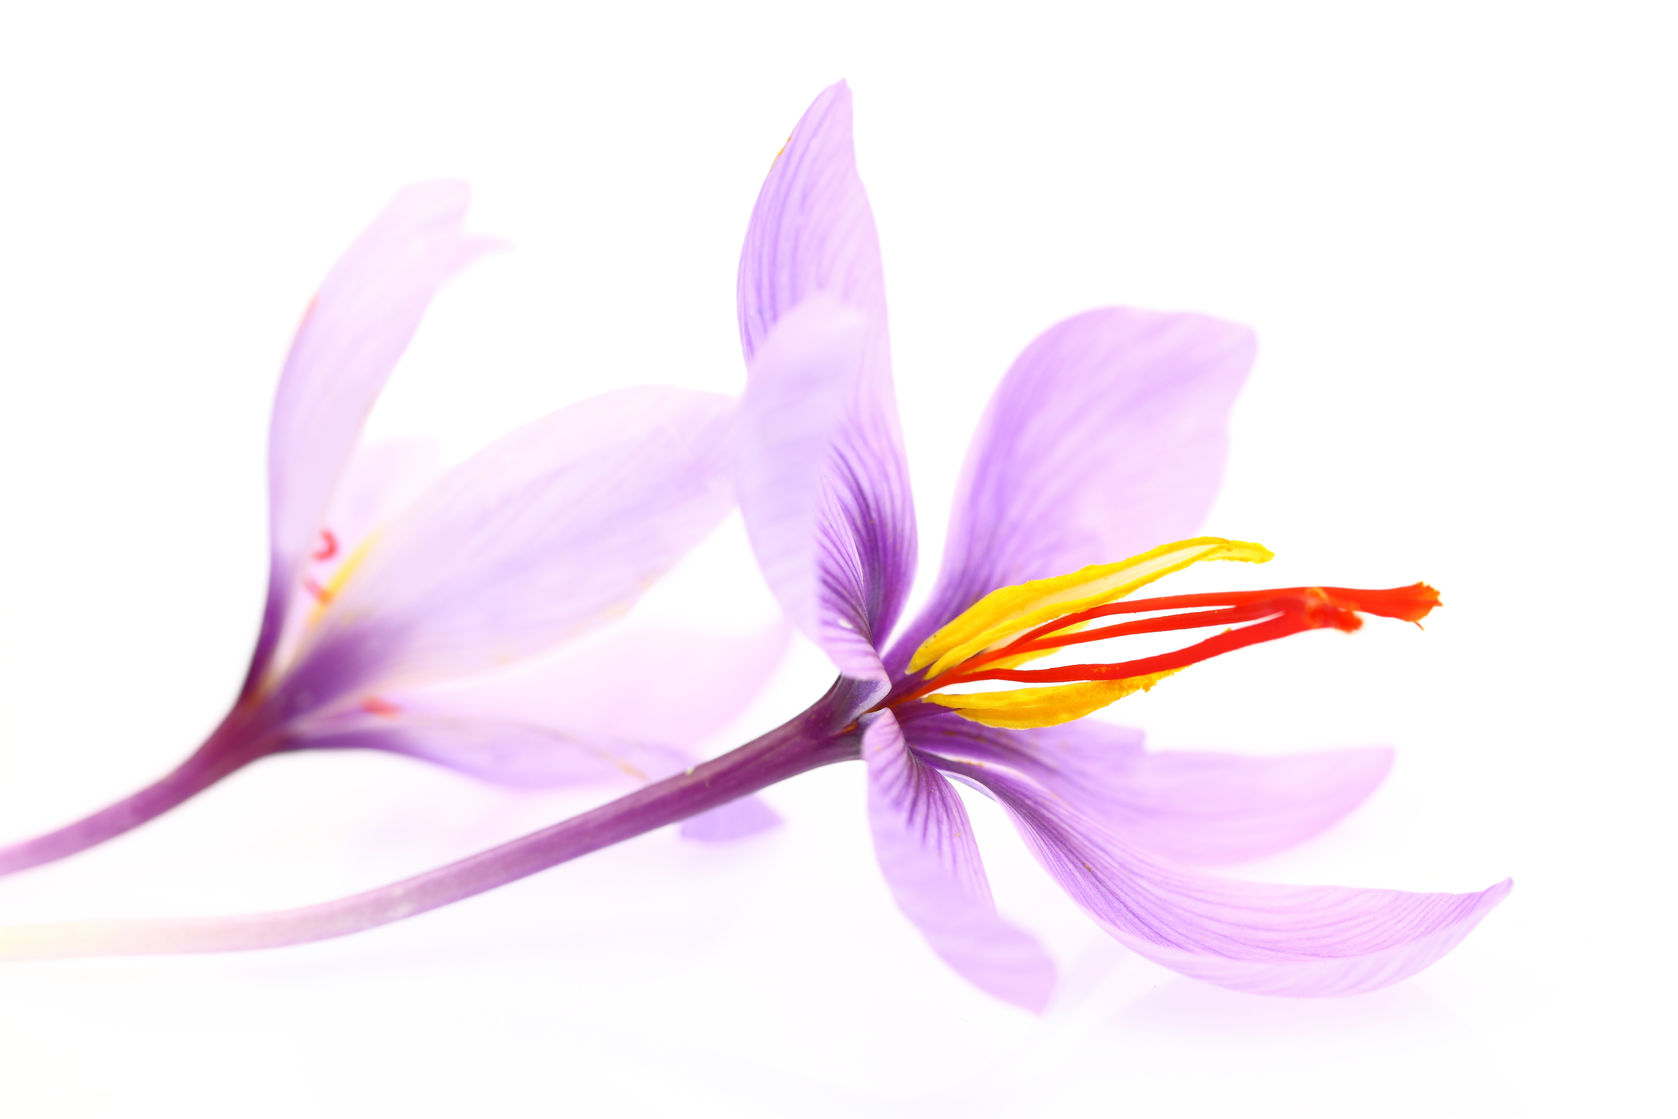 saffron helps depression and anxiety